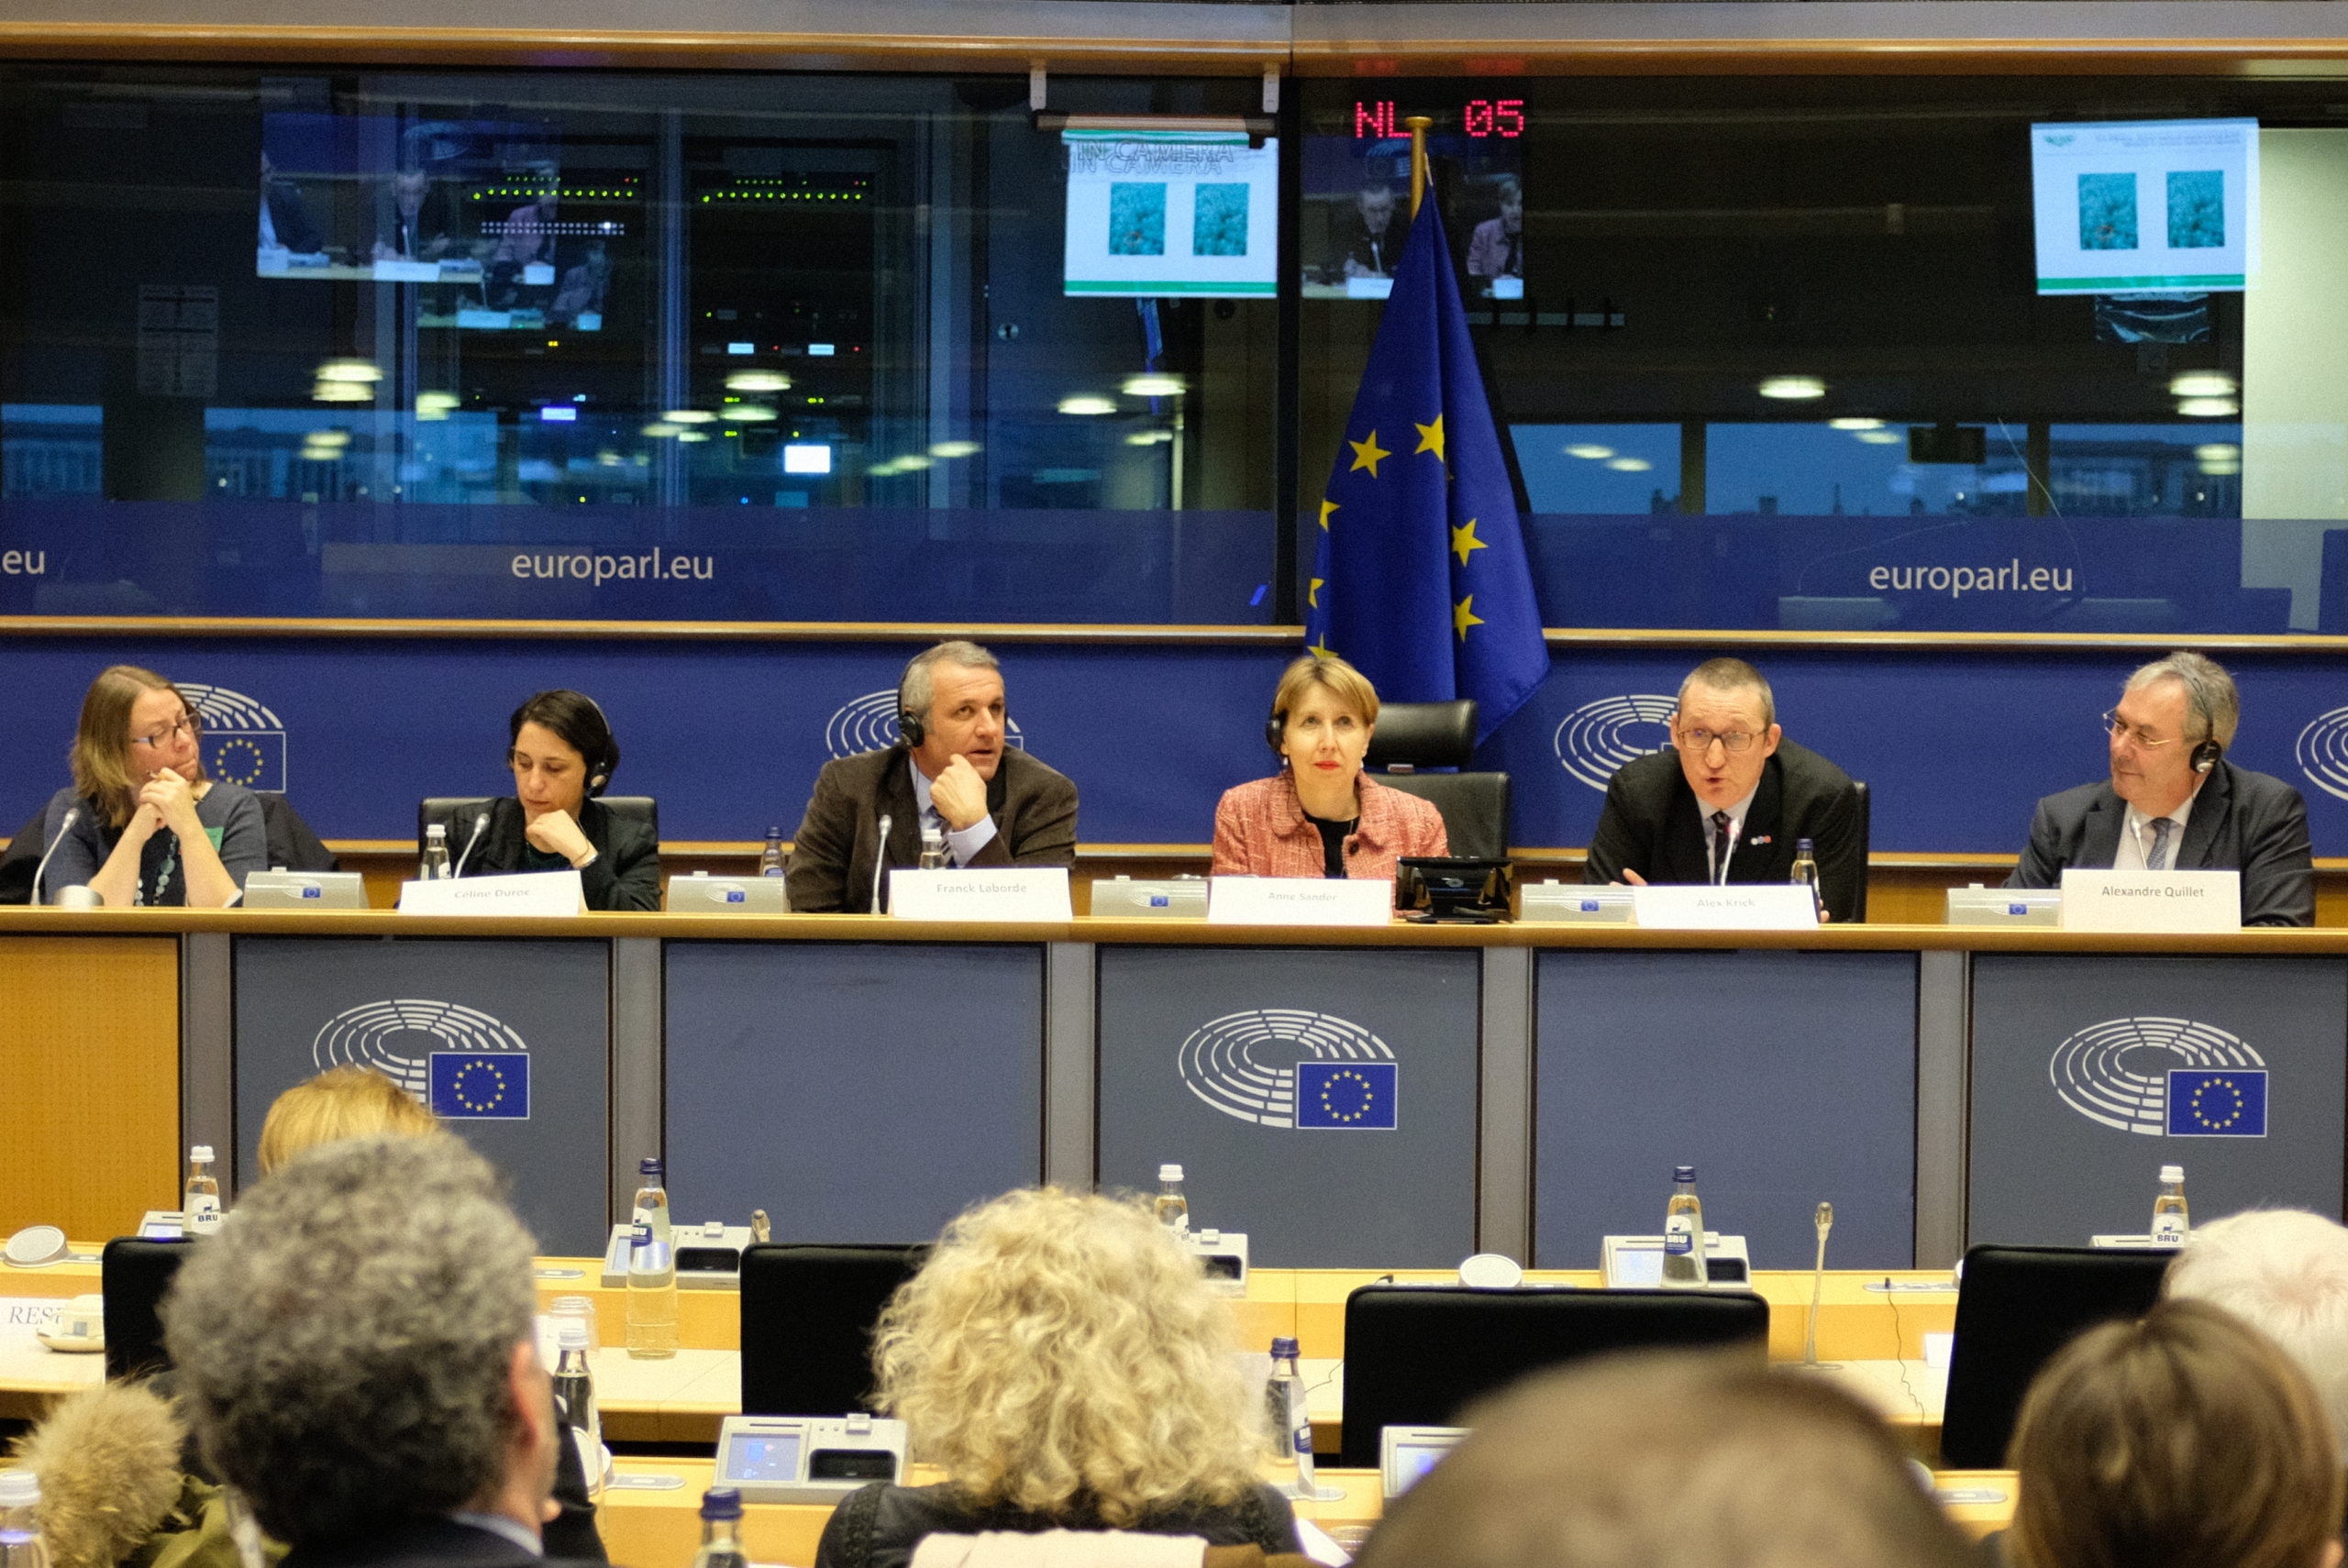 Vicky Marissen, Céline Duroc, Frank Laborde, MEP Anne Sander, Alex Krick & Alexandre Quillet, speakers during Agriculture & Progess's conference at the European Parliament on 23rd of January 2020